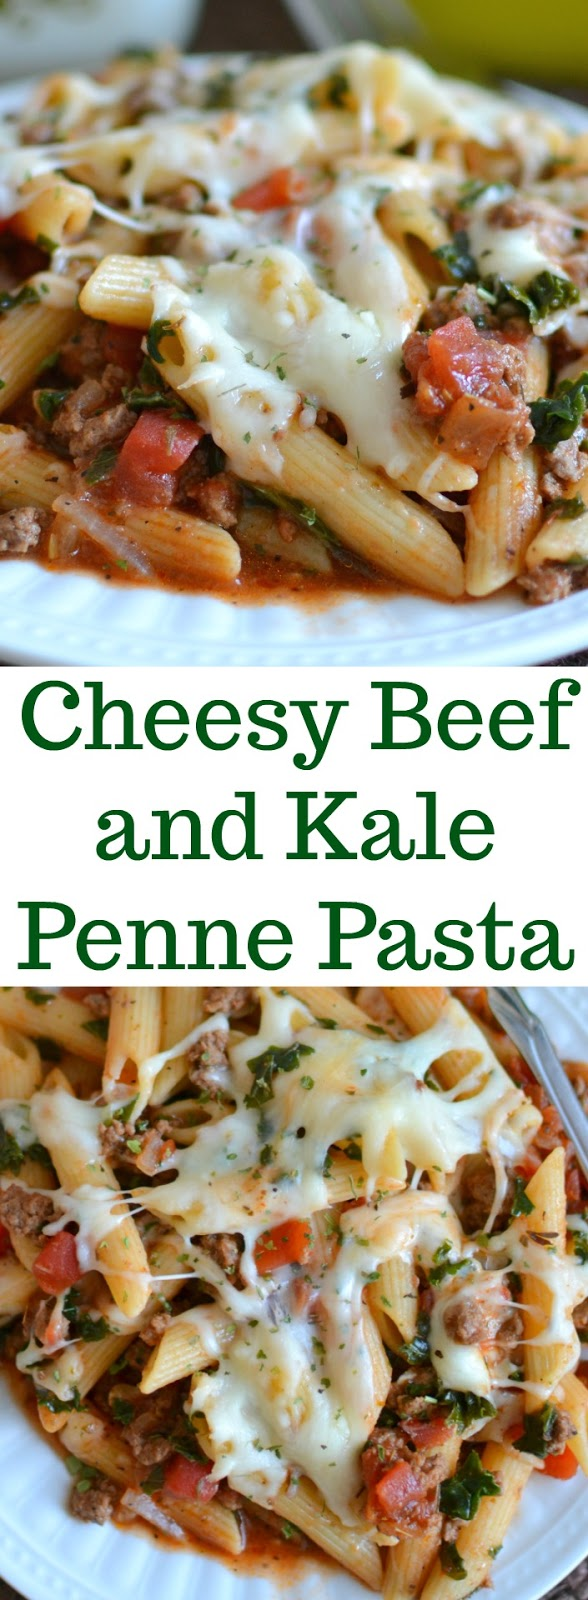 Need a new weeknight dinner? This tasty pasta is ready in less than 30 minutes and is full of cheesy, beefy goodness!